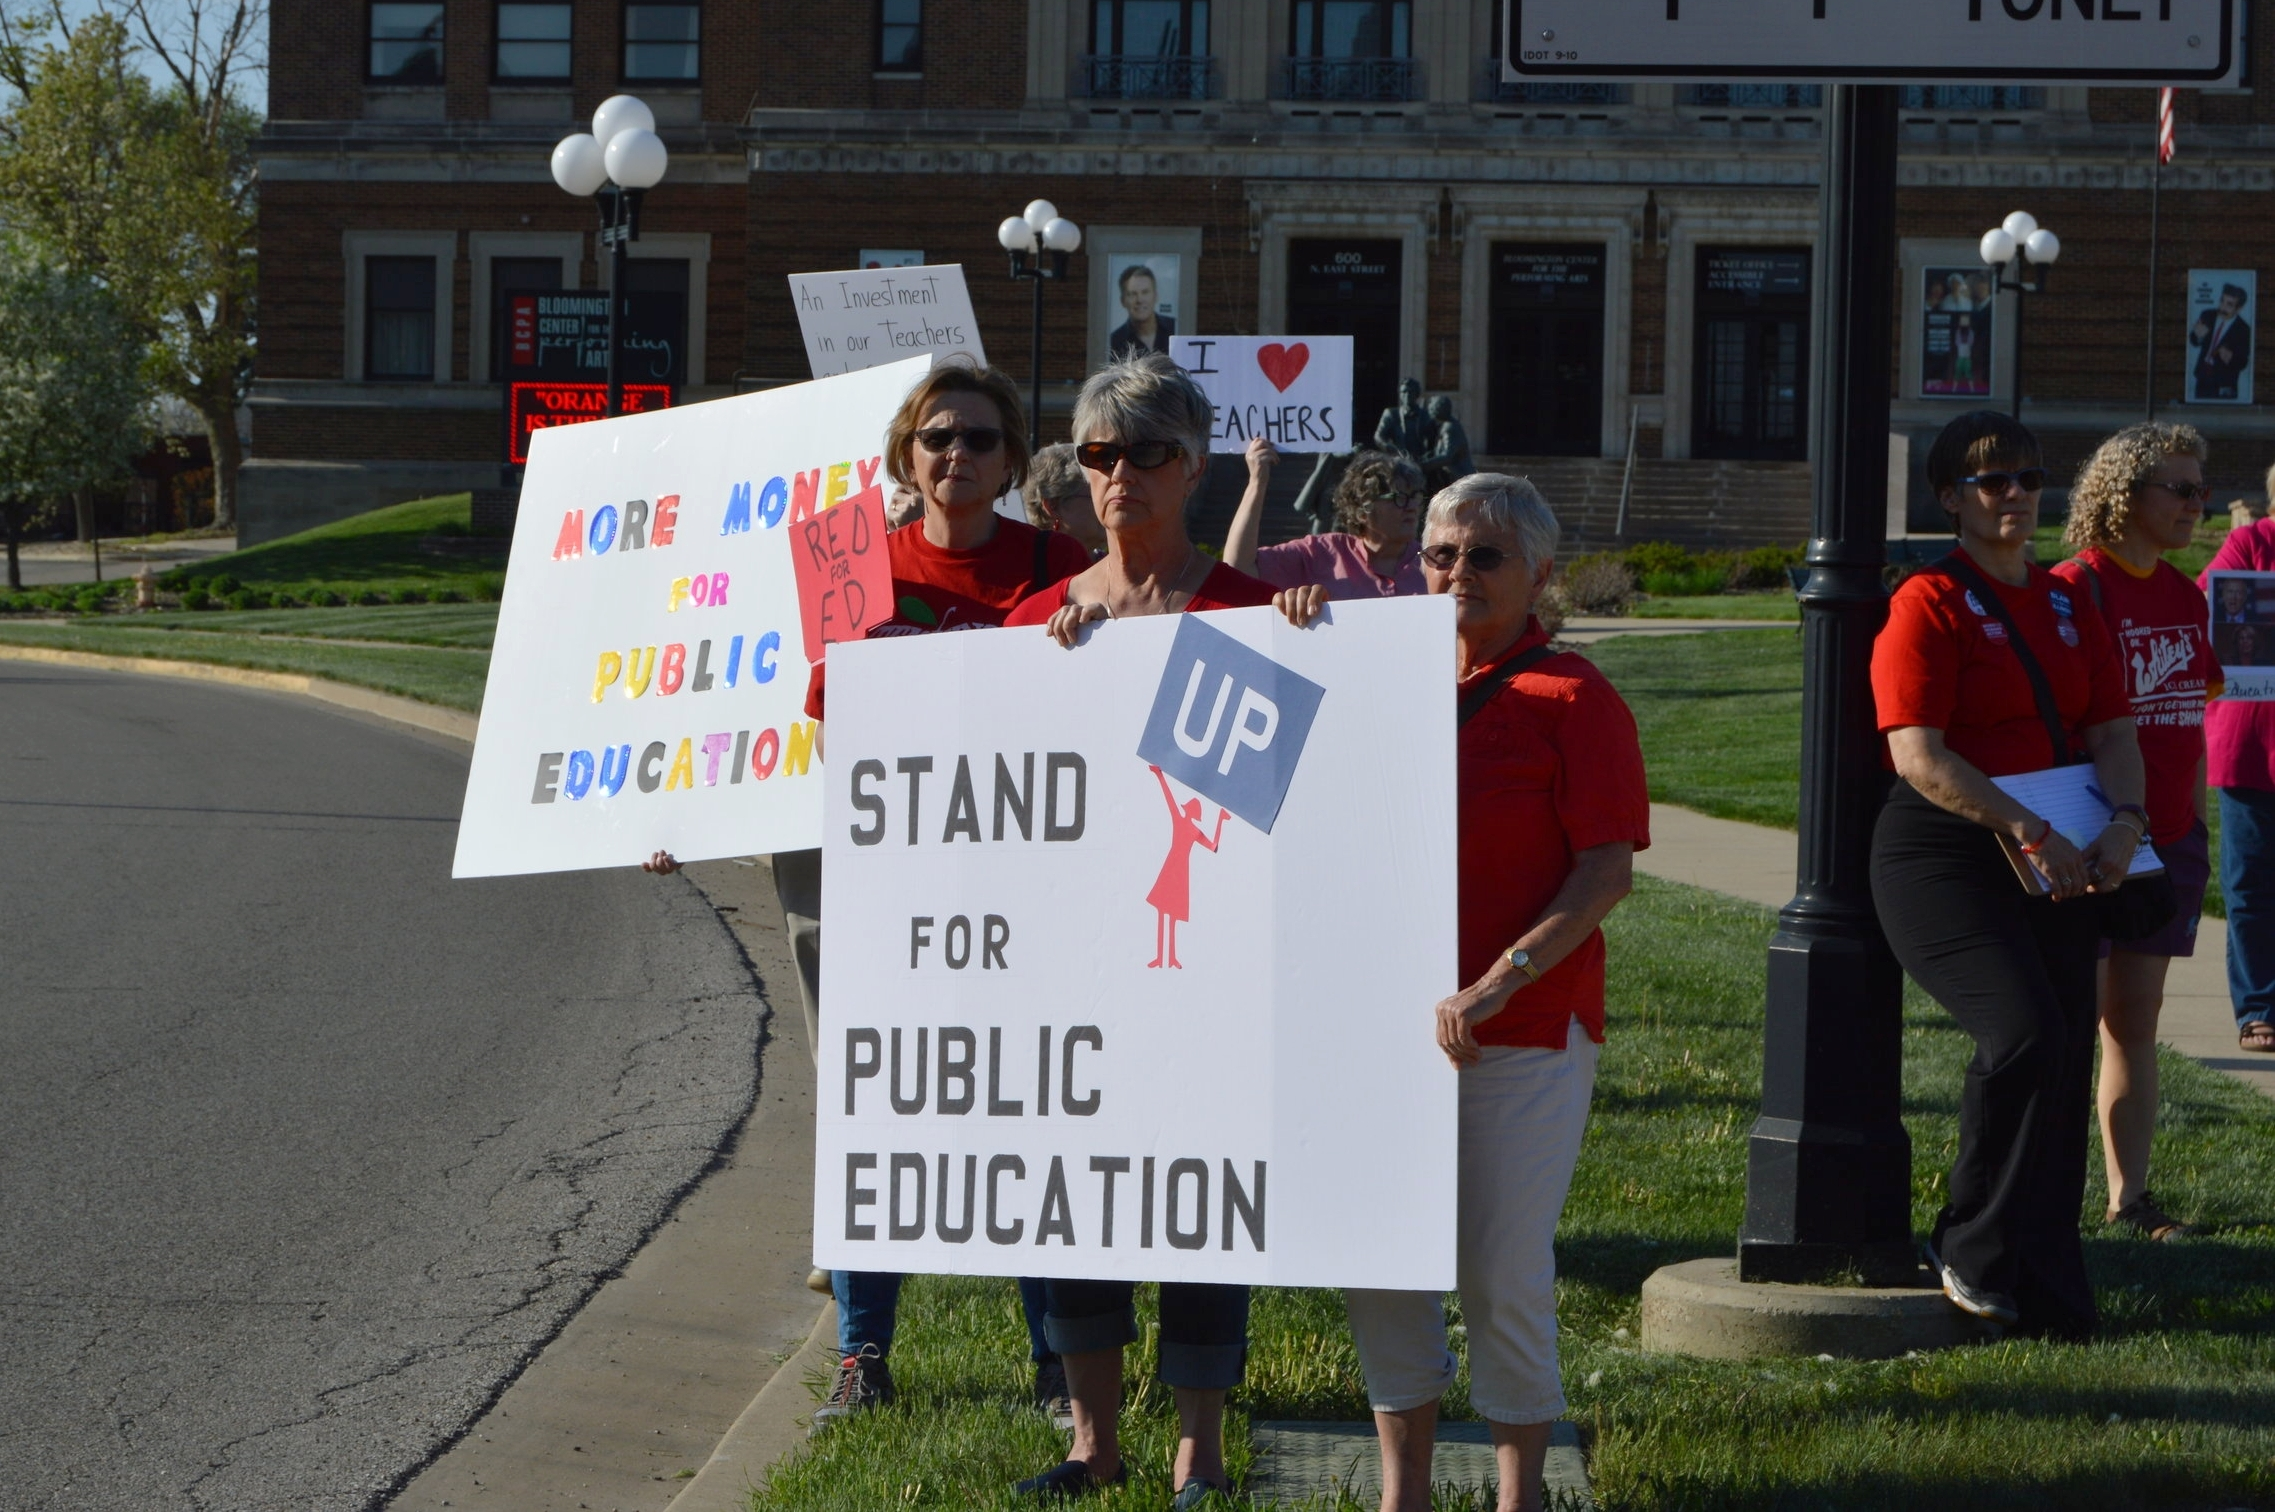 Members of the Stand Up for Social Justice coalition advocate for greater public education funding at a vigil outside the Bloomington Center for Performing Arts Monday. (Photo:Breanna Grow/AdaptBN)